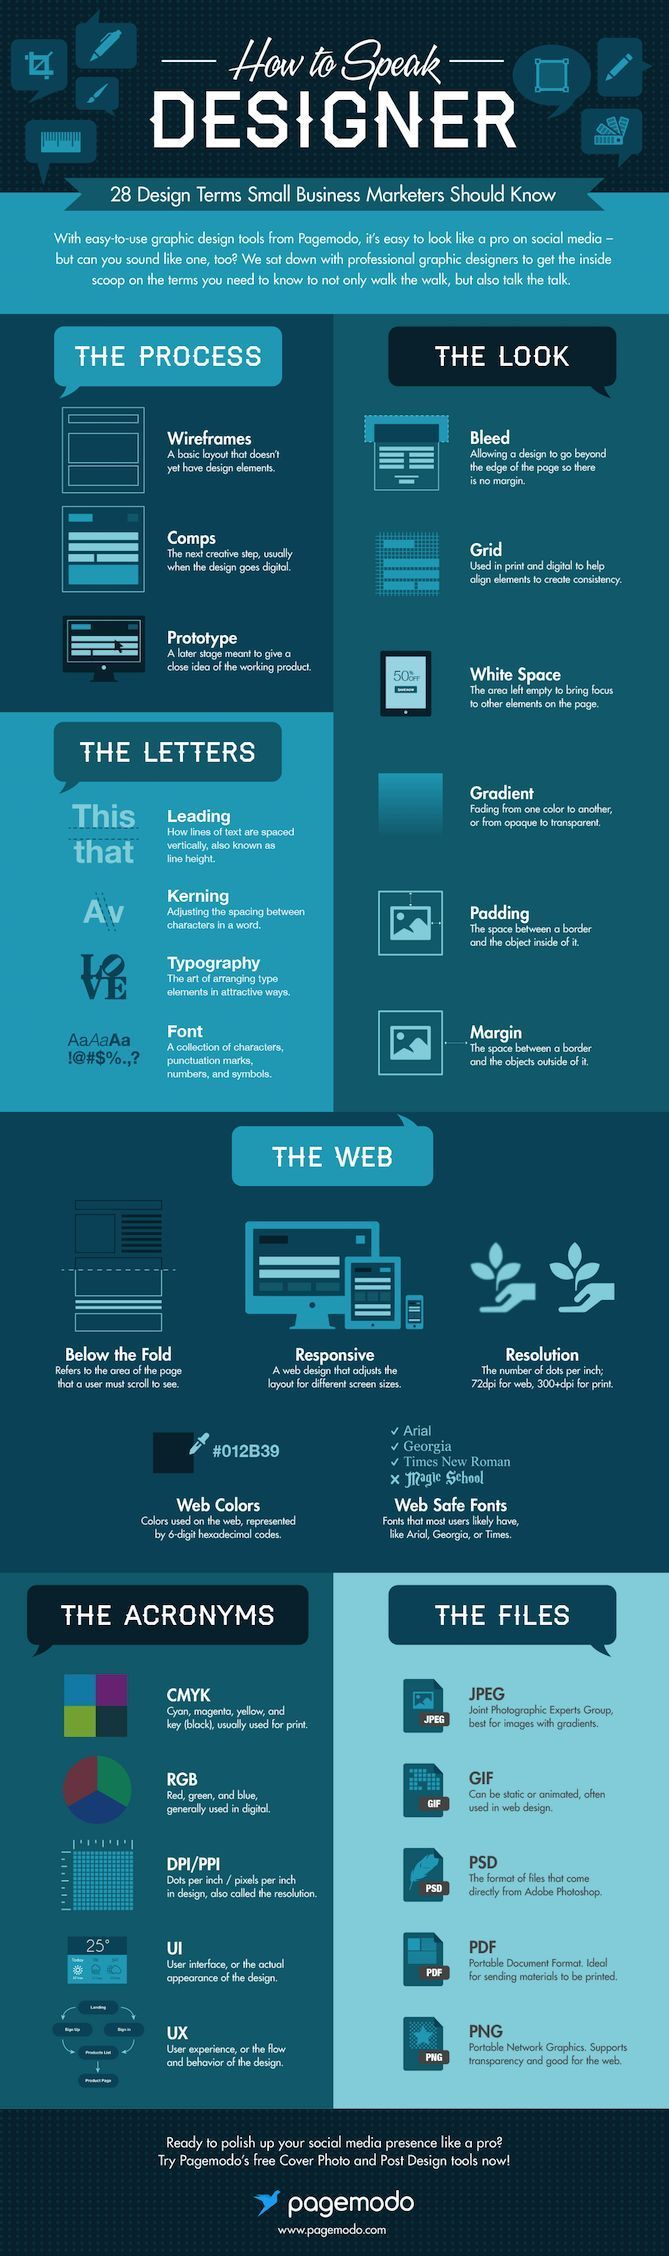 28 Graphic Design Terms Every Marketer Should Know [Infographic]